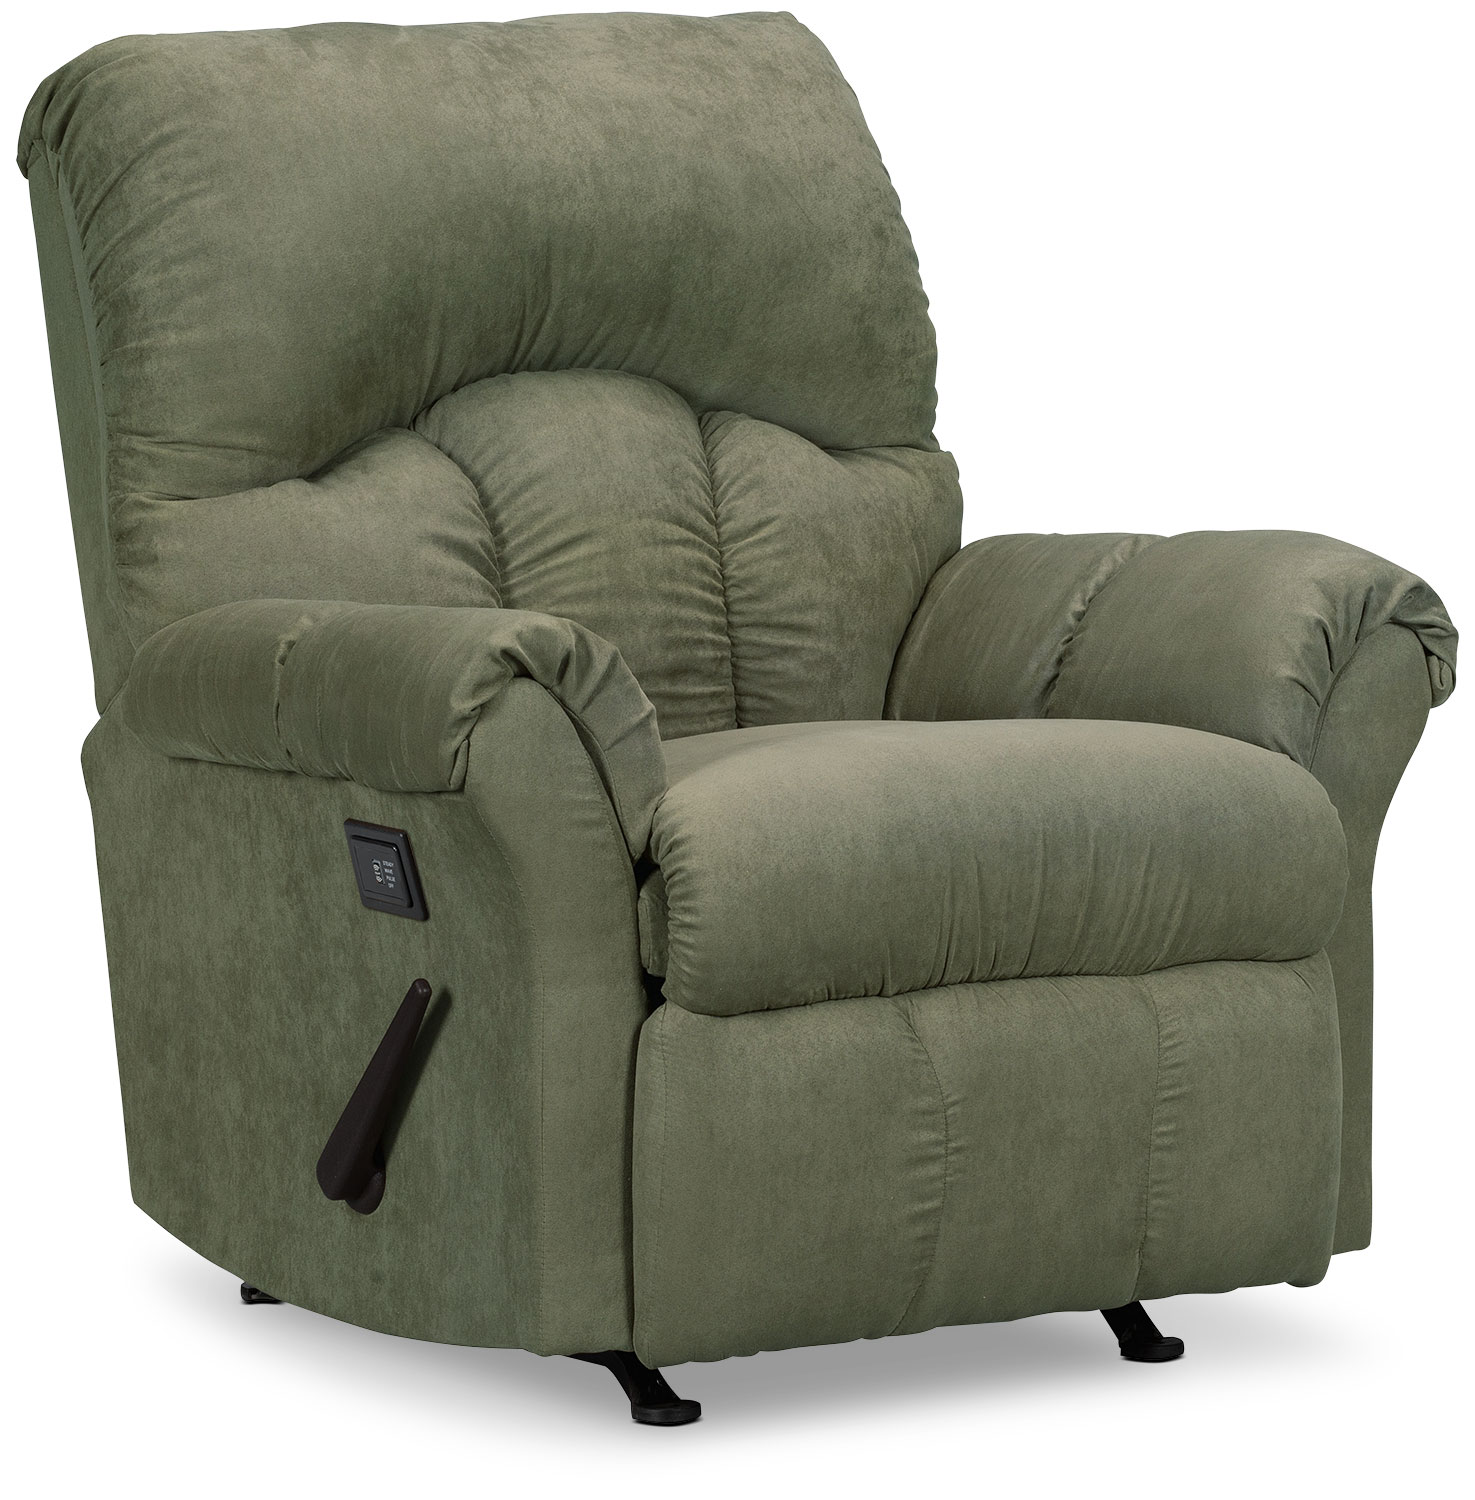 Designed2B Recliner 6734 Microsuede Massage Chair - Fern